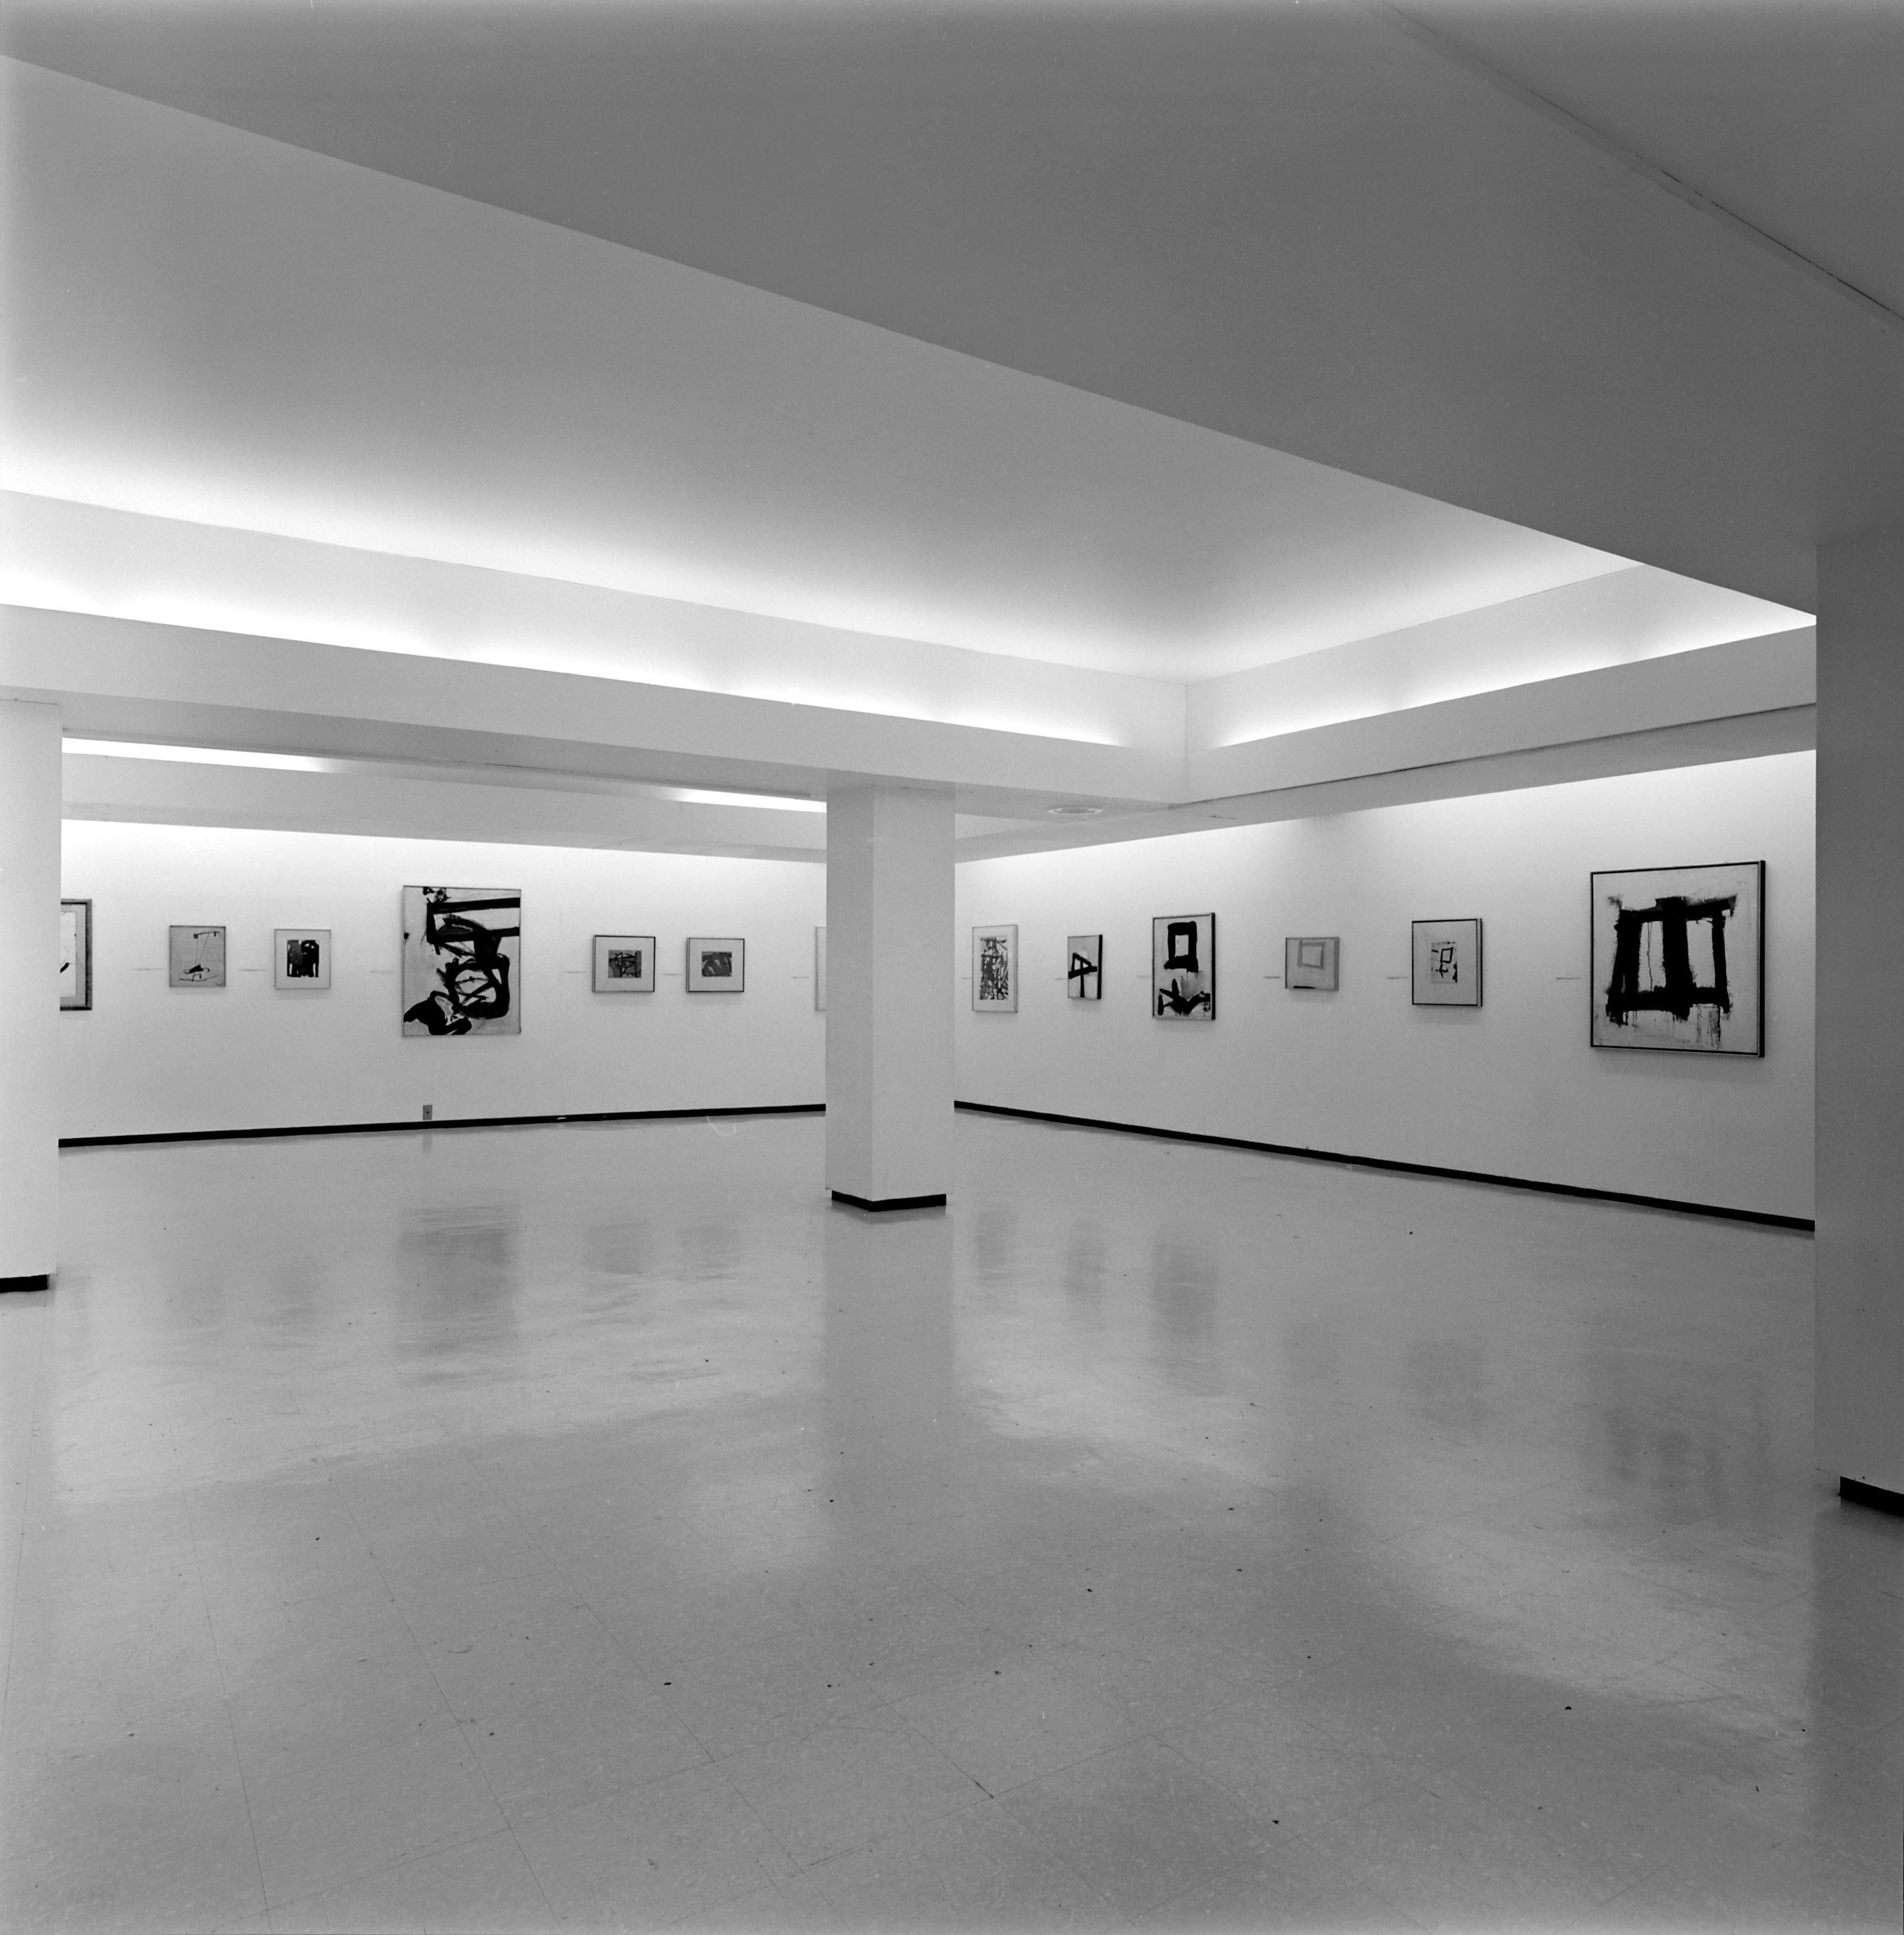 Many small black and white paintings hang along a gallery wall.